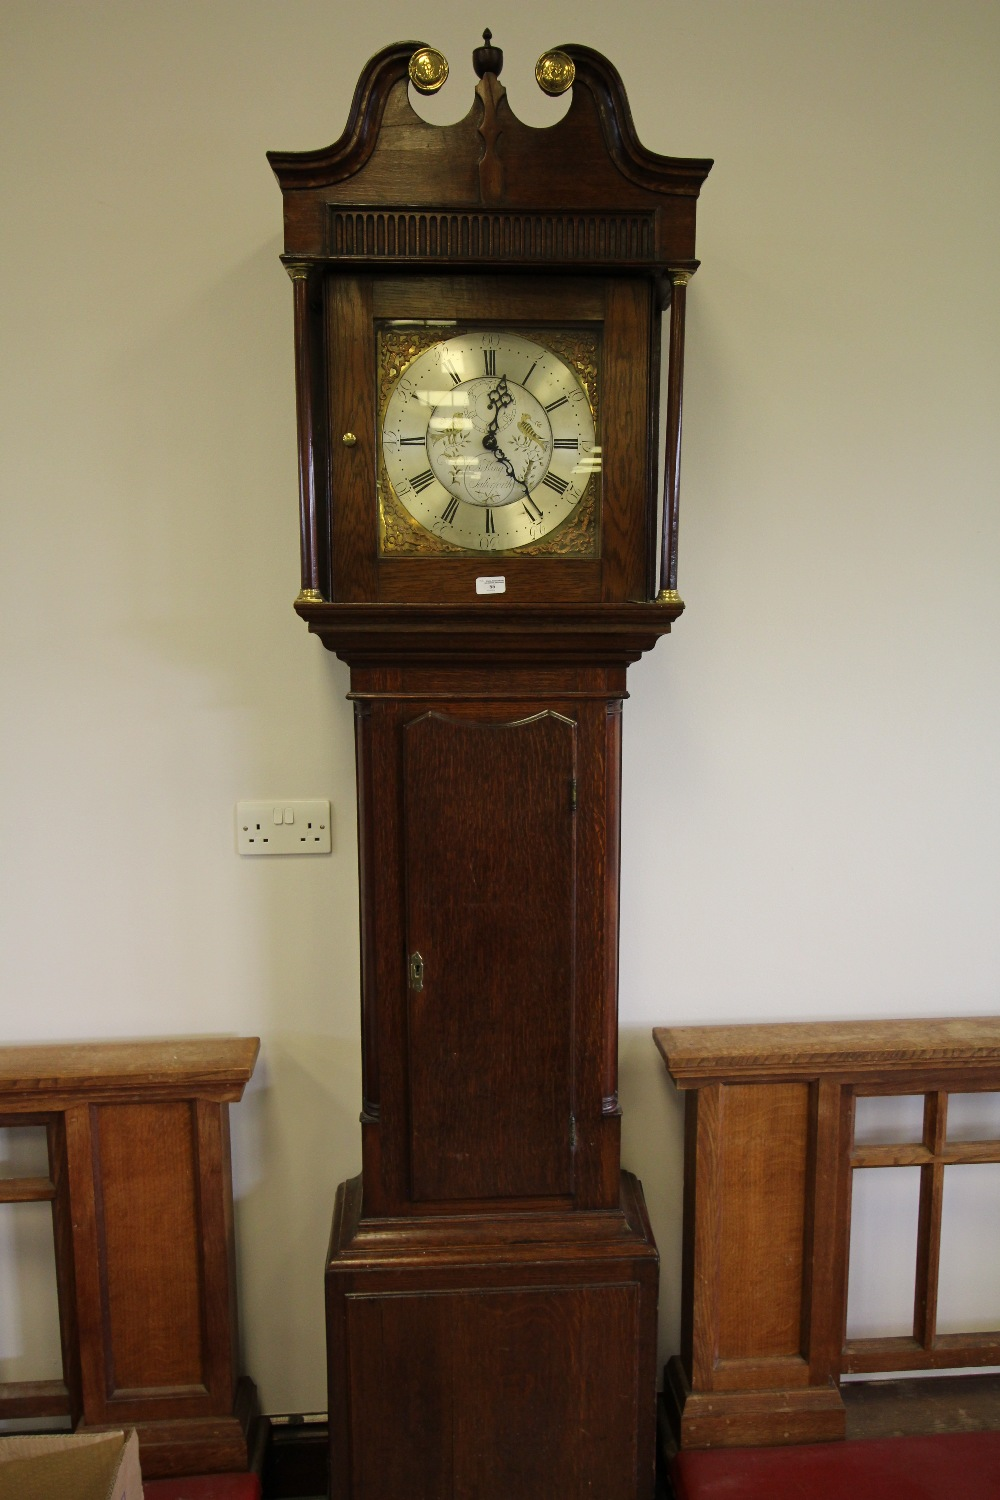 Lot 55 - 19th century oak long-case clock by J King of Salterforth (dial lacking hands)